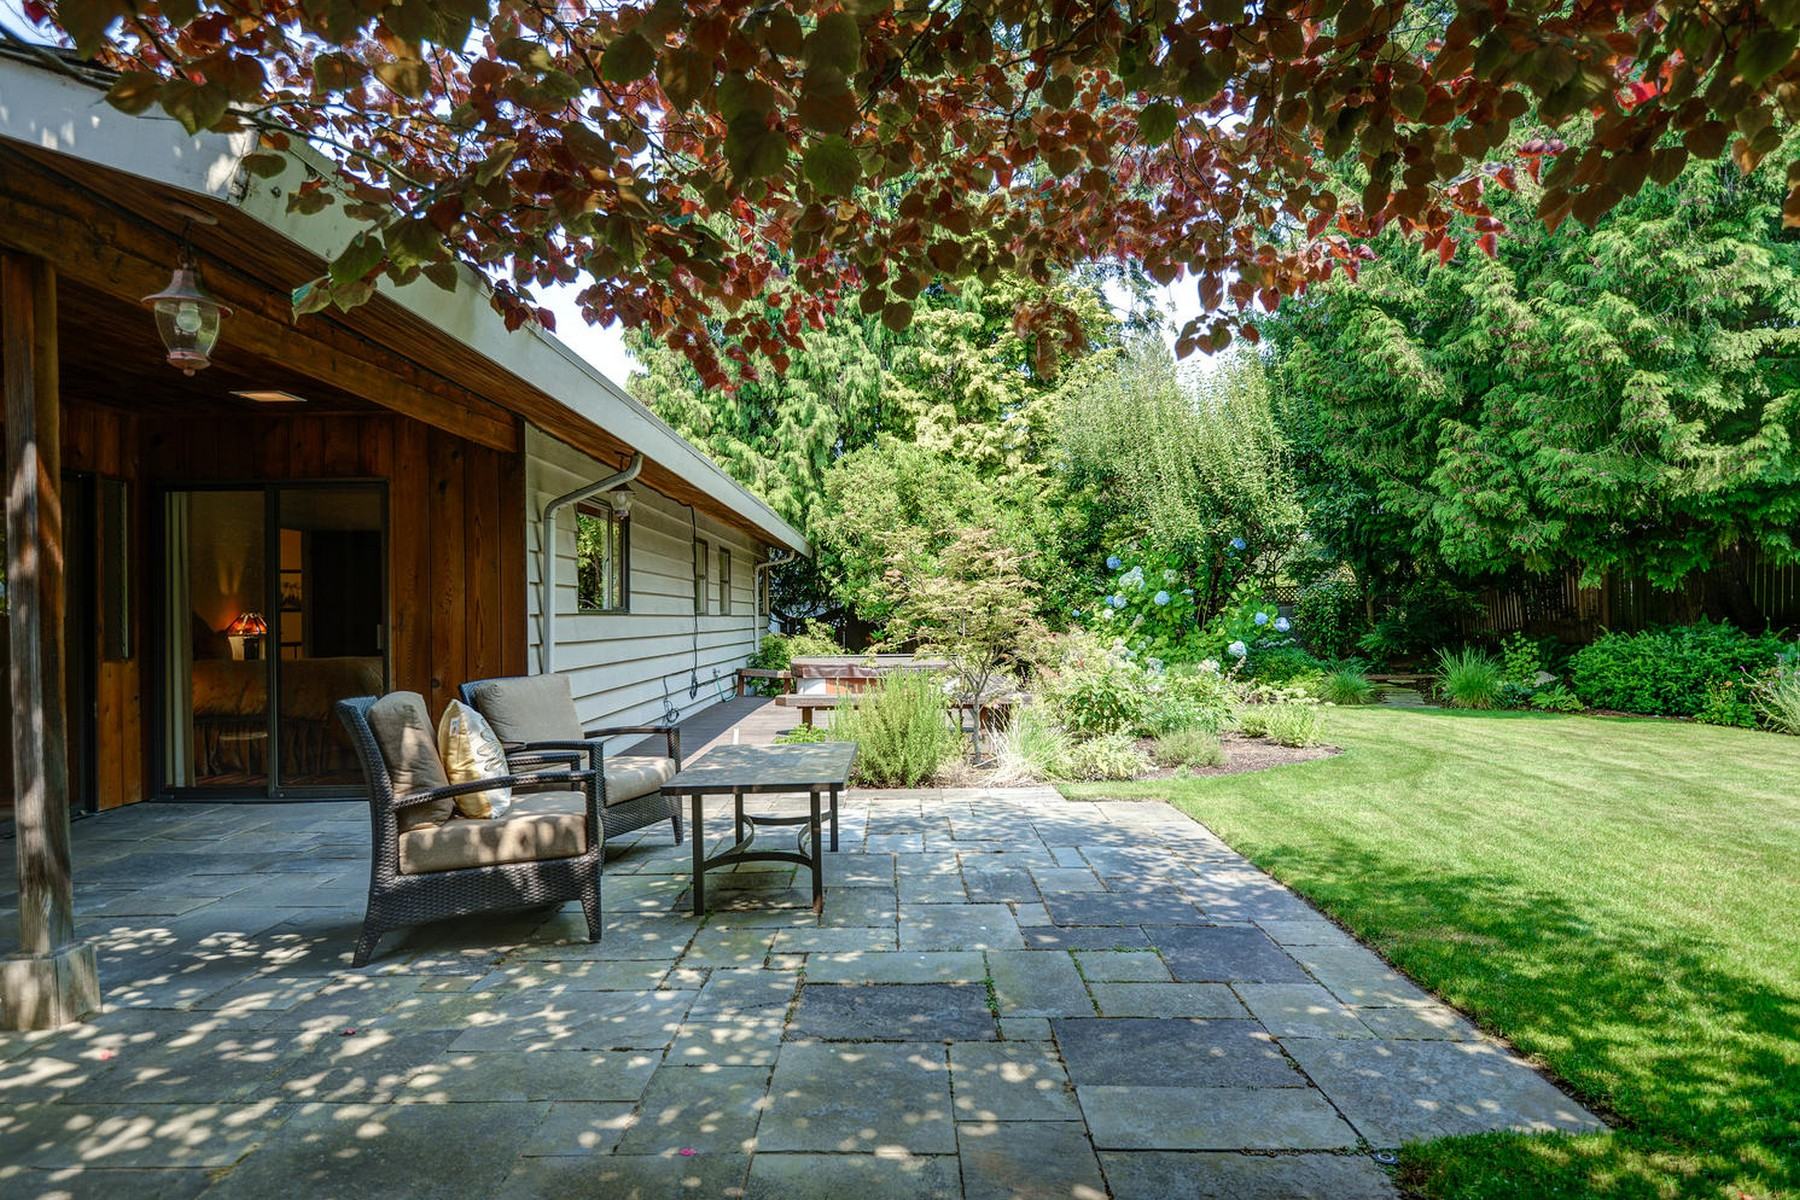 Additional photo for property listing at Yarrow Point Home 4408 92nd Ave NE 亚罗, 华盛顿州 98004 美国